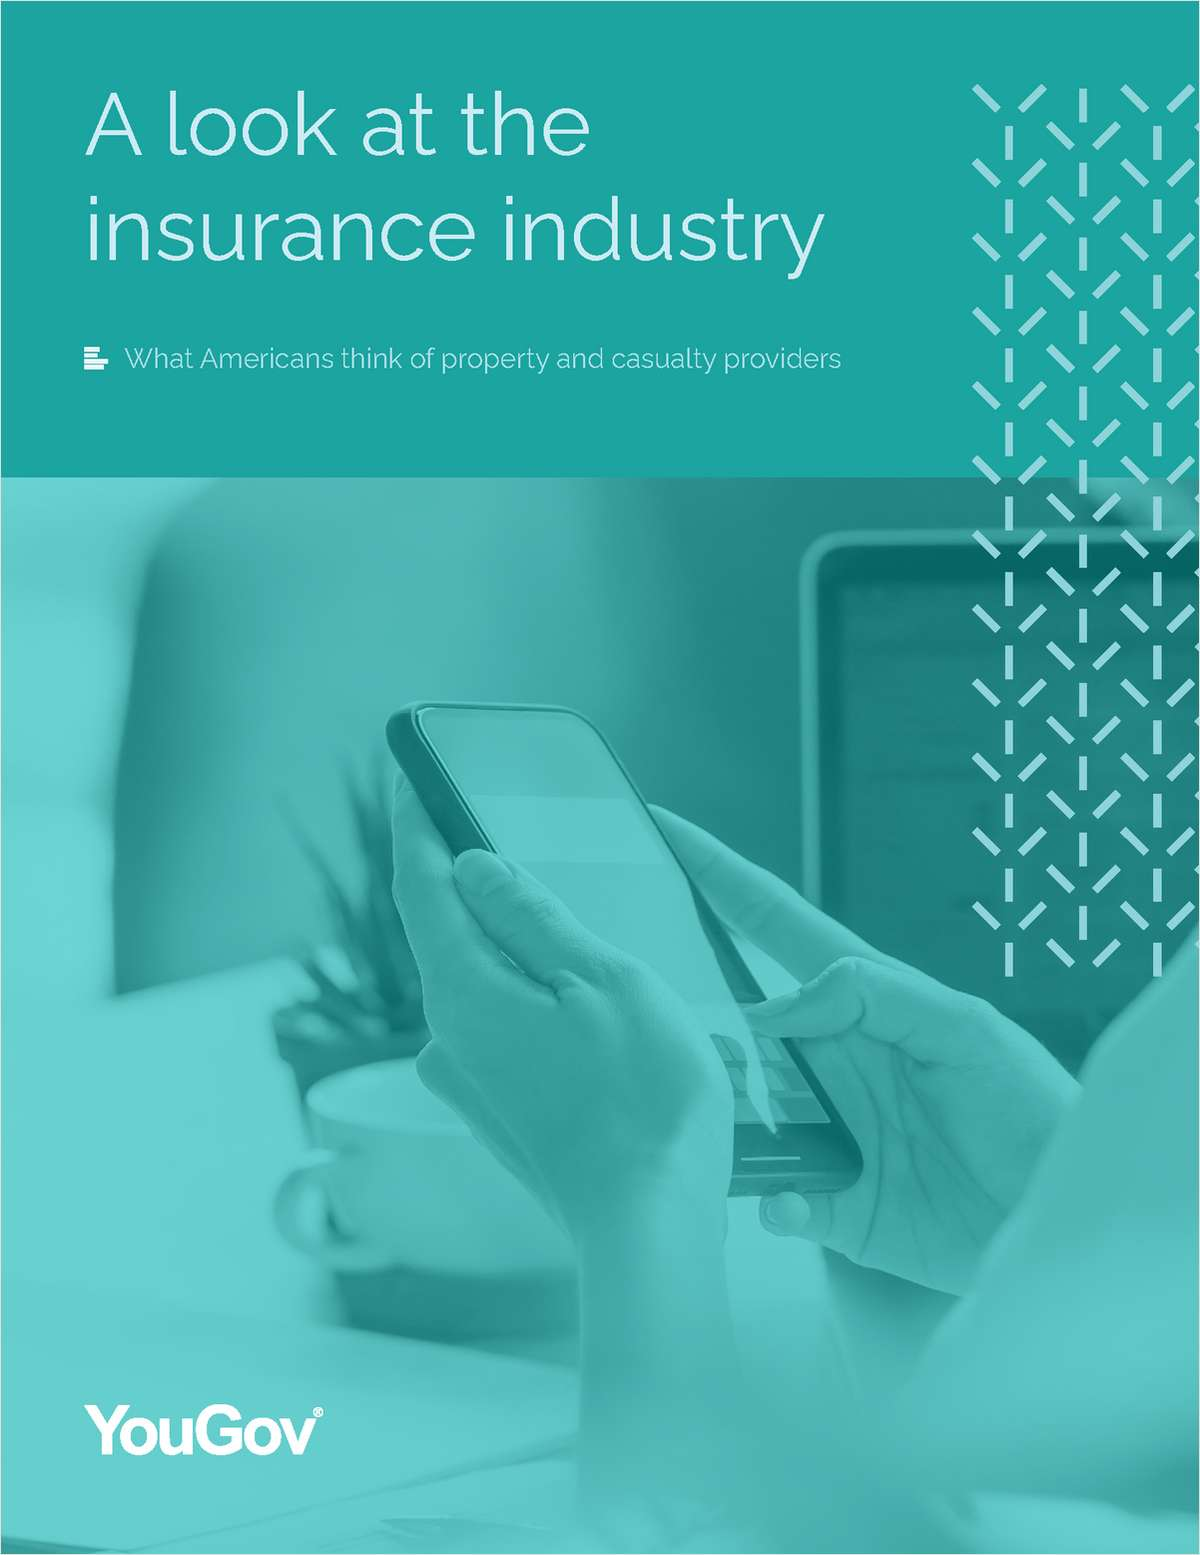 A Look at the Insurance Industry